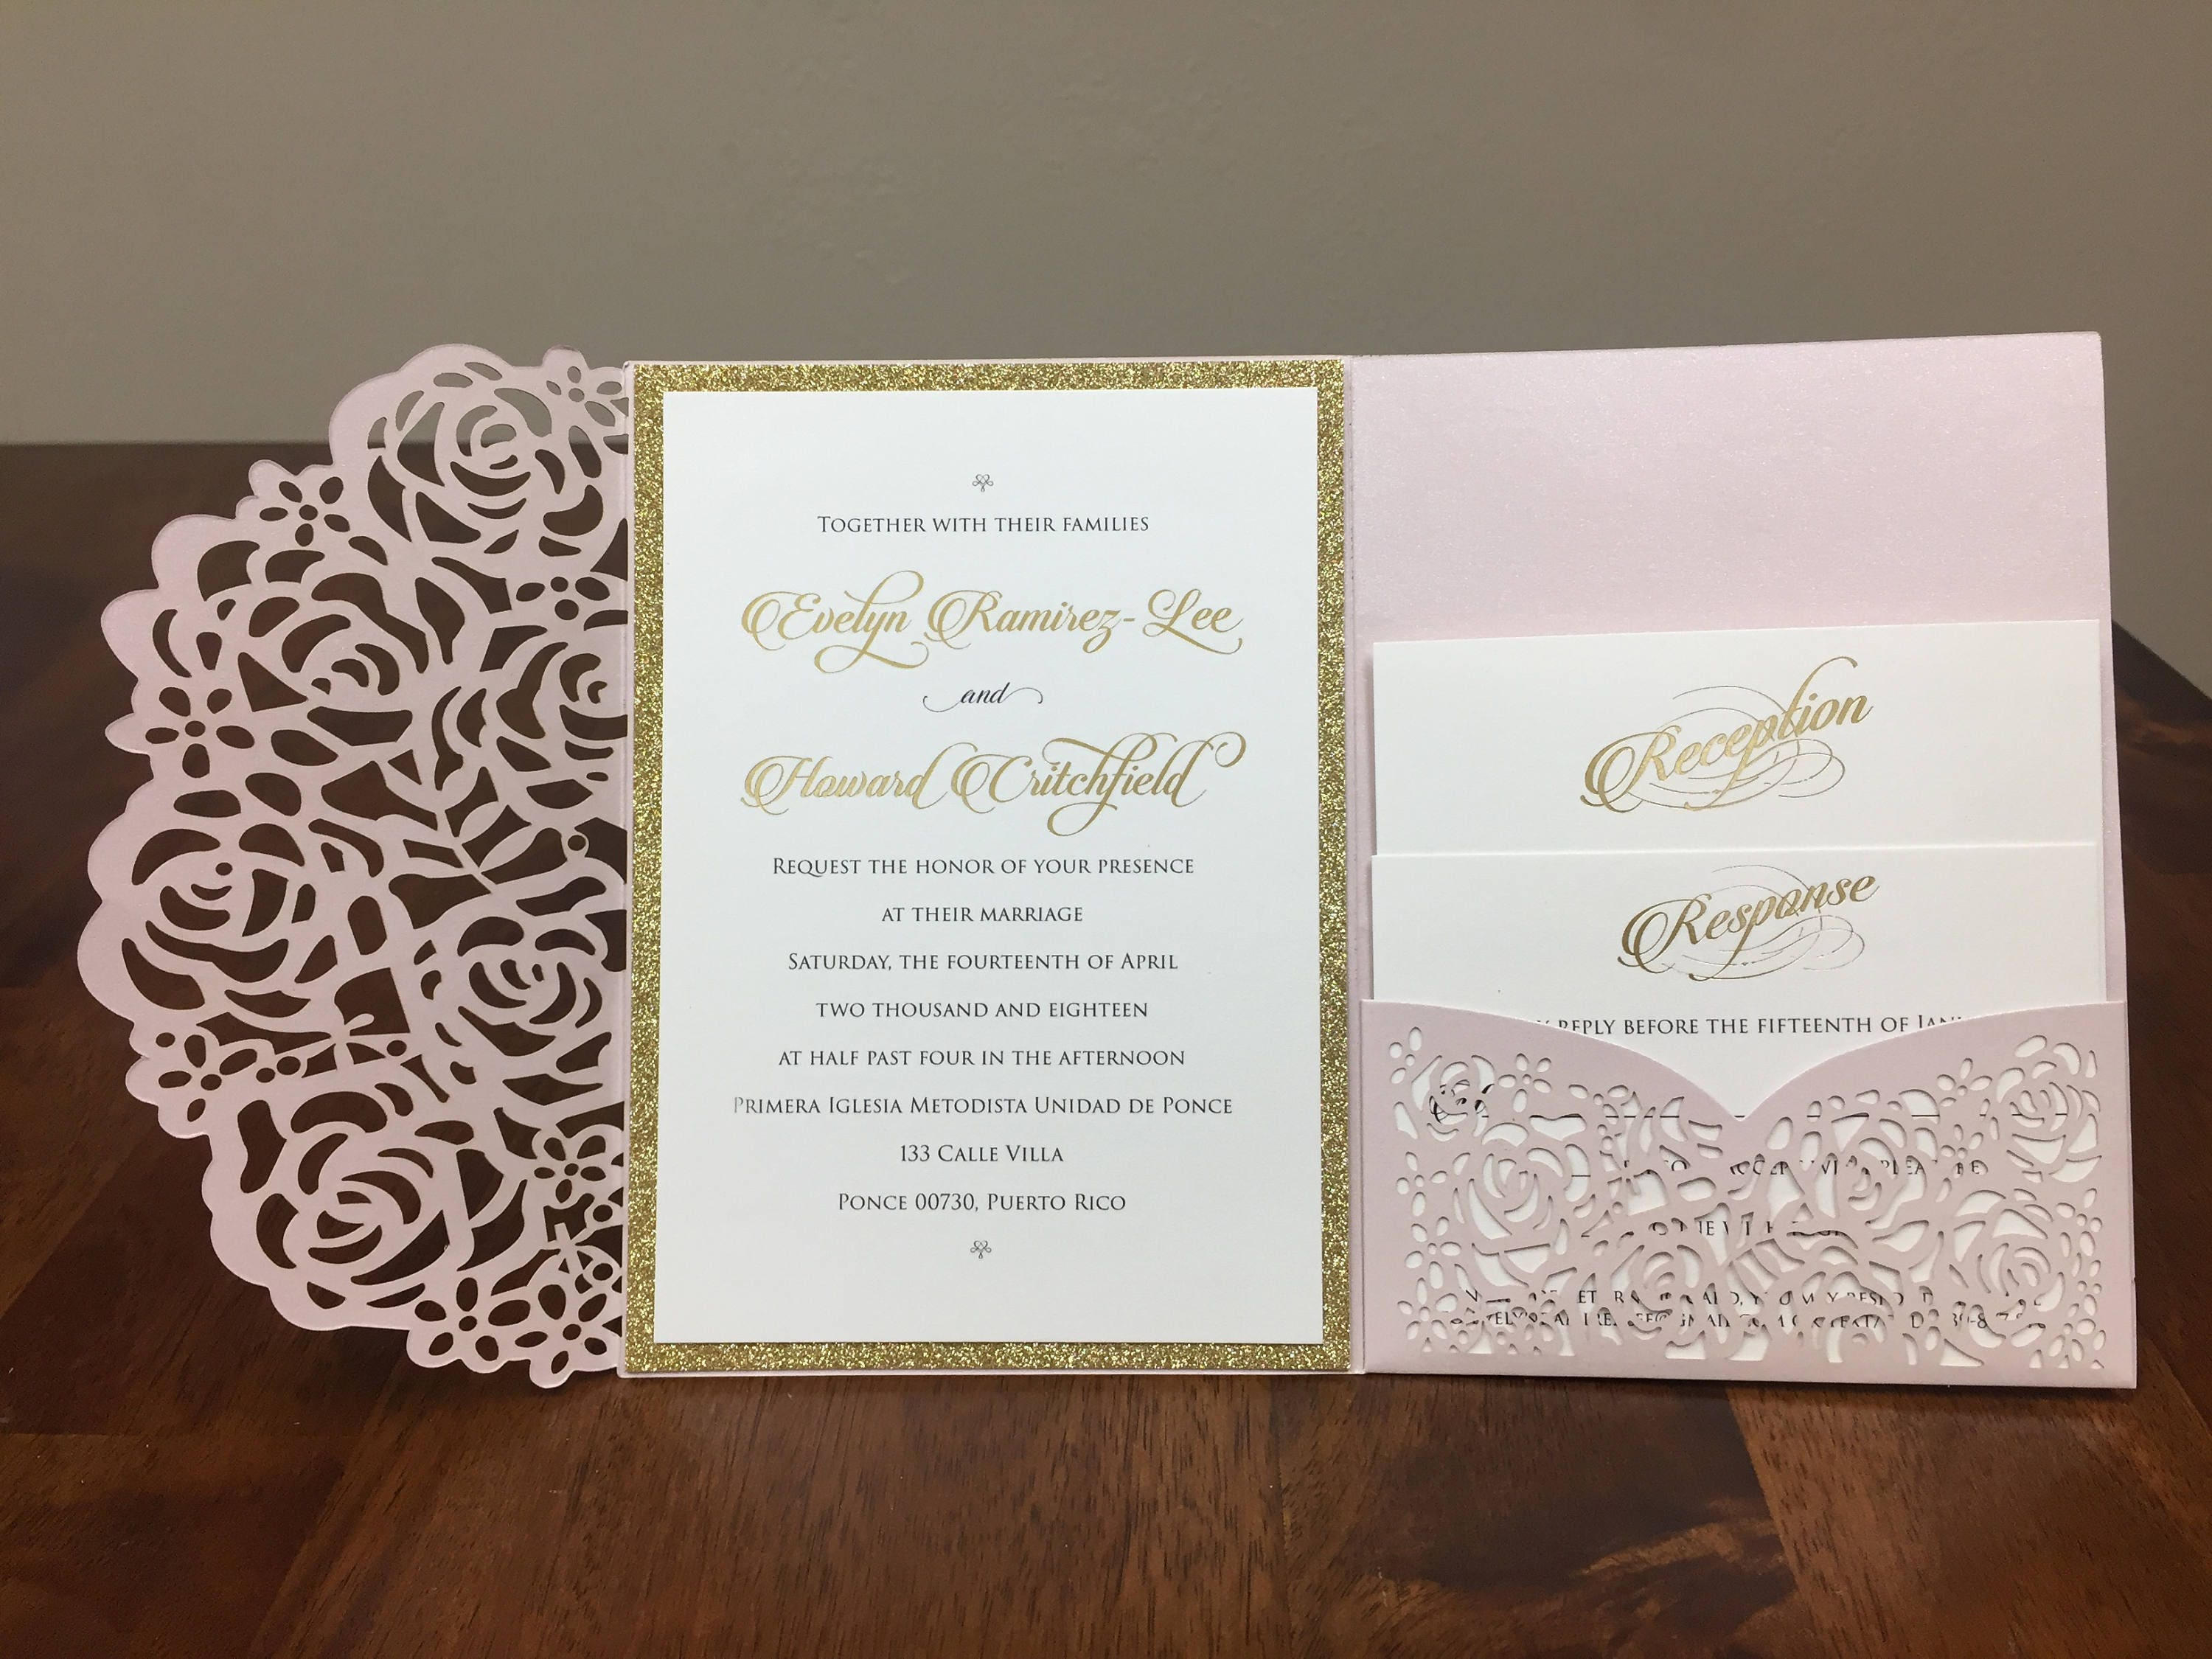 Business card wedding invitations gallery party invitations ideas monat vip business cards monat care instructions business gorgeous laser cut wedding invitations pocket wedding invitation magicingreecefo Image collections